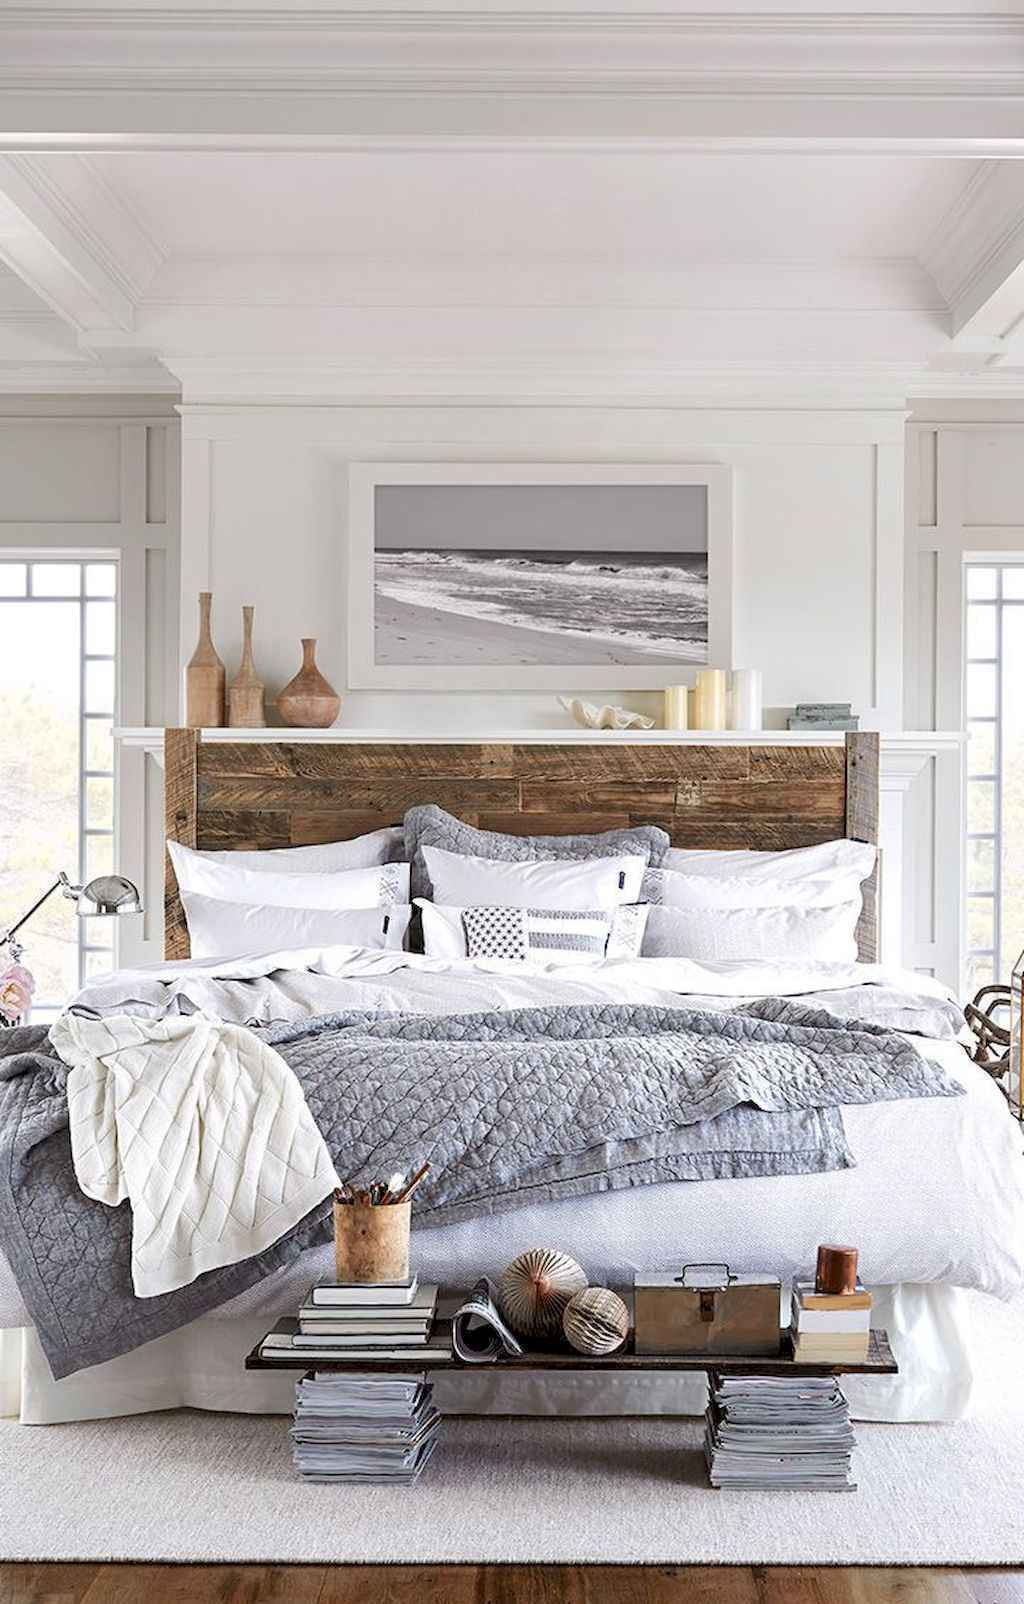 Awesome bedroom decoration ideas (40)